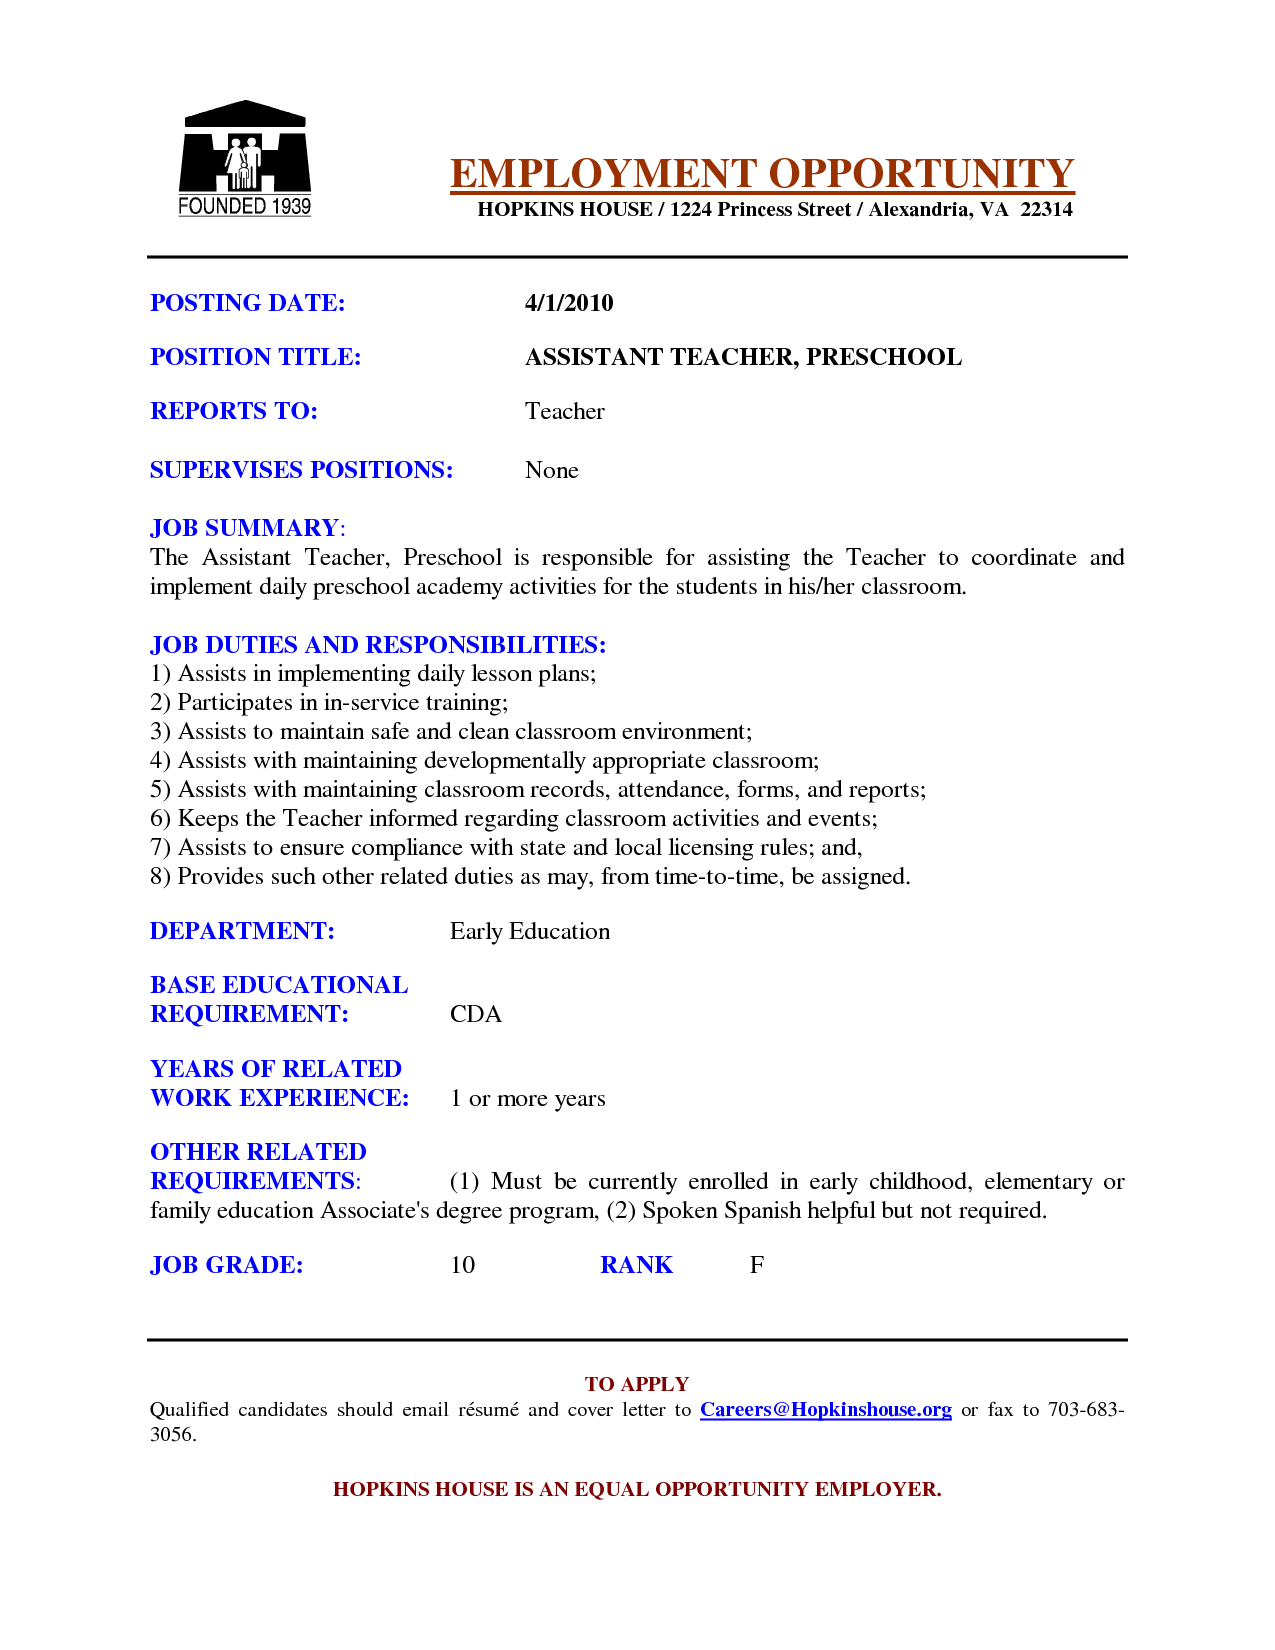 Medical Office assistant Resume Sample - Preschool assistant Teacher Resume Examples Google Search